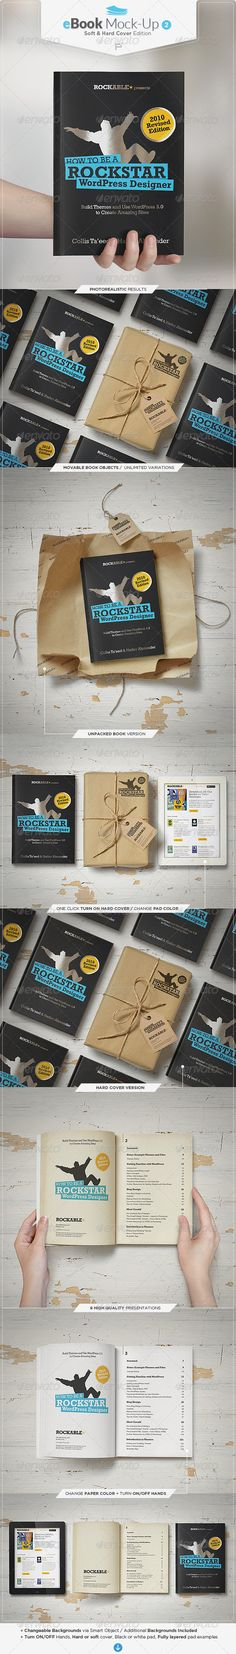 eBook Mock-Up Set 2 / Soft & Hard Cover Edition  #pad #paper #presentation • Available here → http://graphicriver.net/item/ebook-mockup-set-2-soft-hard-cover-edition/6887101?s_rank=97&ref=pxcr